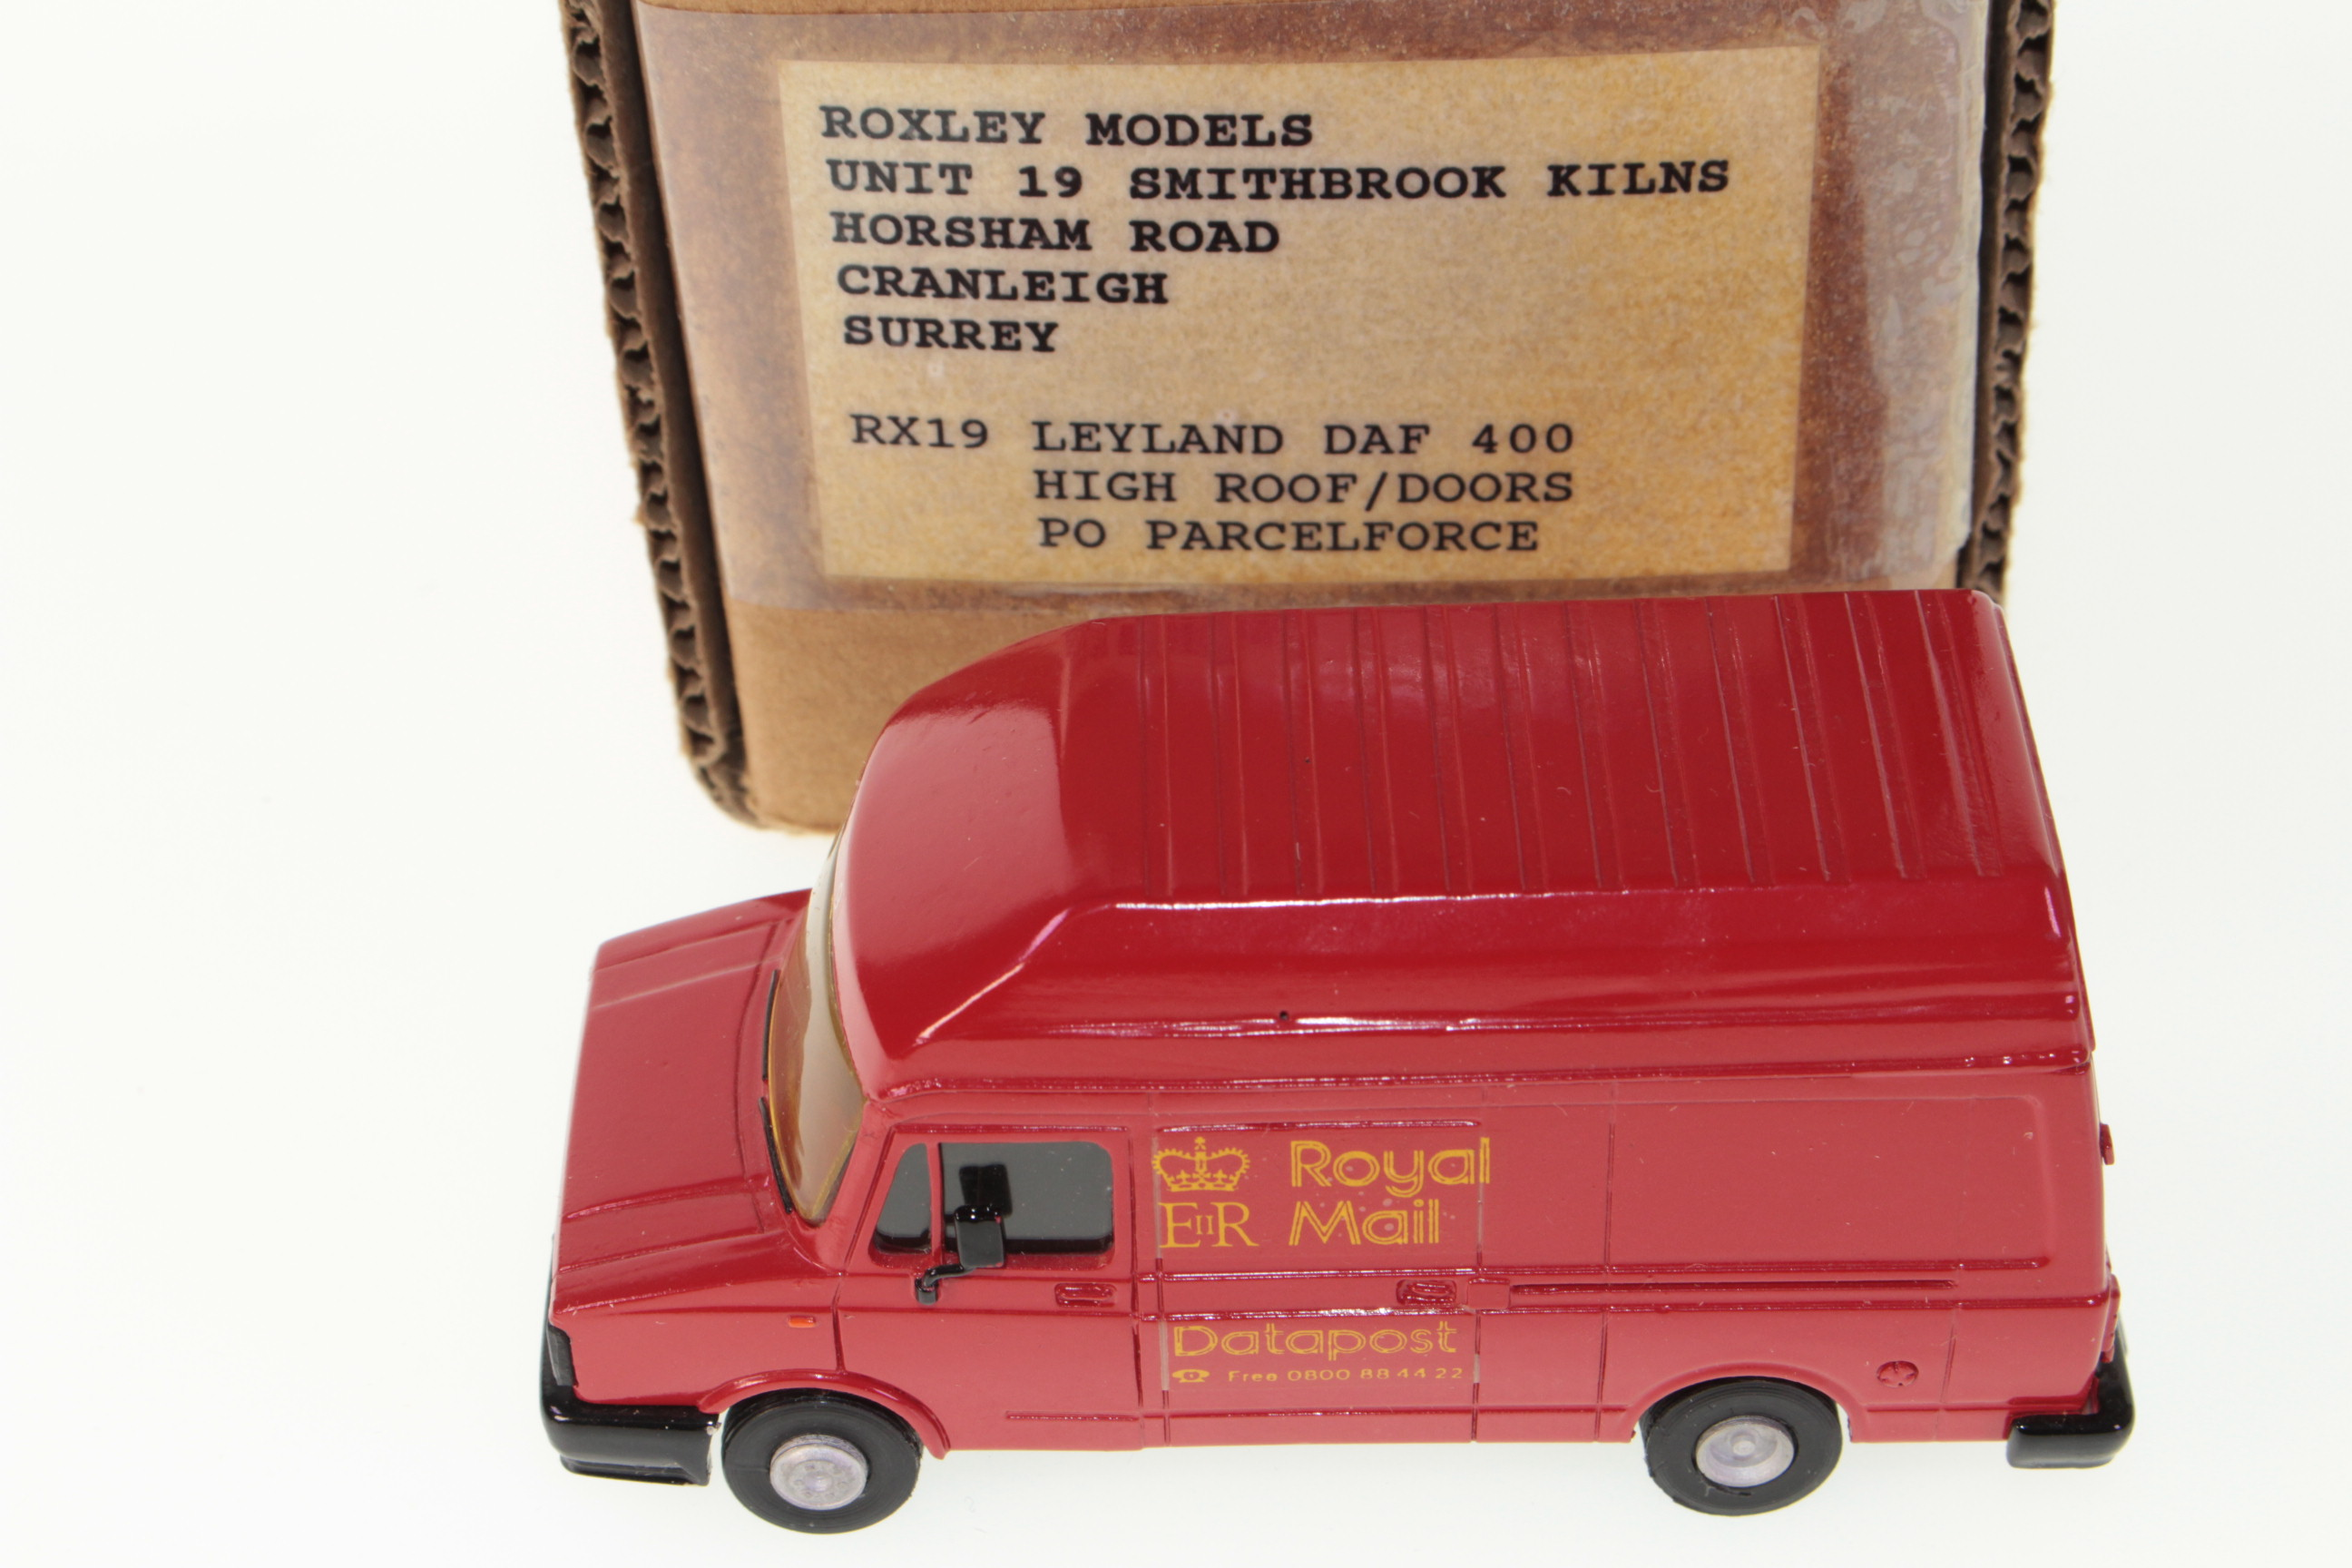 Picture Gallery for Roxley Models RX19 Leyland DAF 400